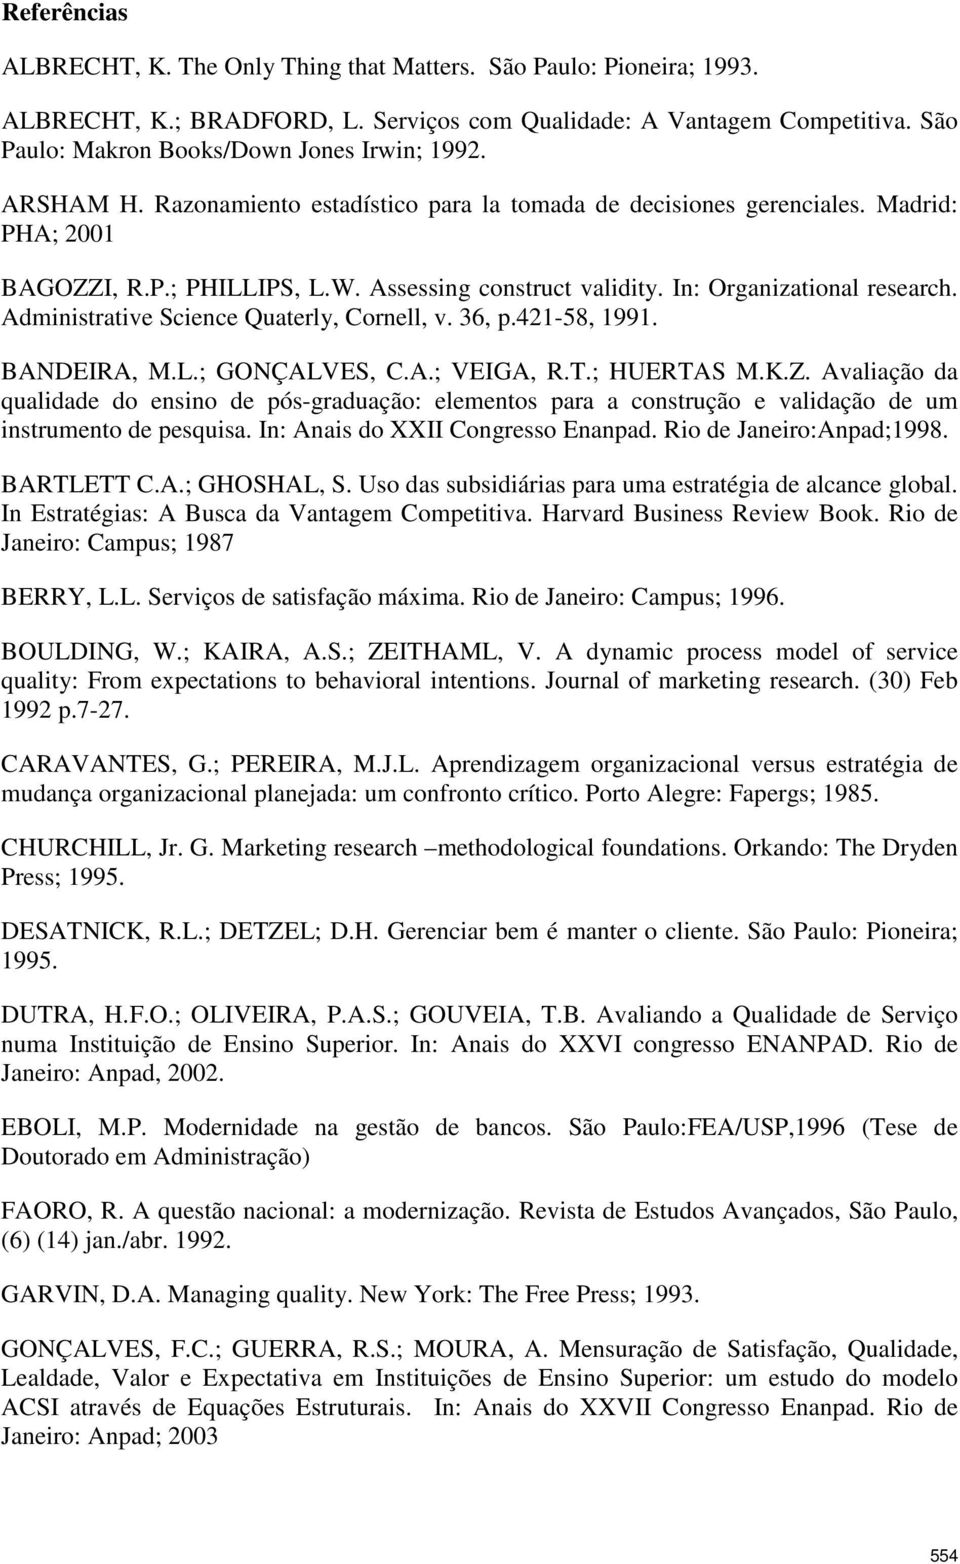 Assessing construct validity. In: Organizational research. Administrative Science Quaterly, Cornell, v. 36, p.421-58, 1991. BANDEIRA, M.L.; GONÇALVES, C.A.; VEIGA, R.T.; HUERTAS M.K.Z.